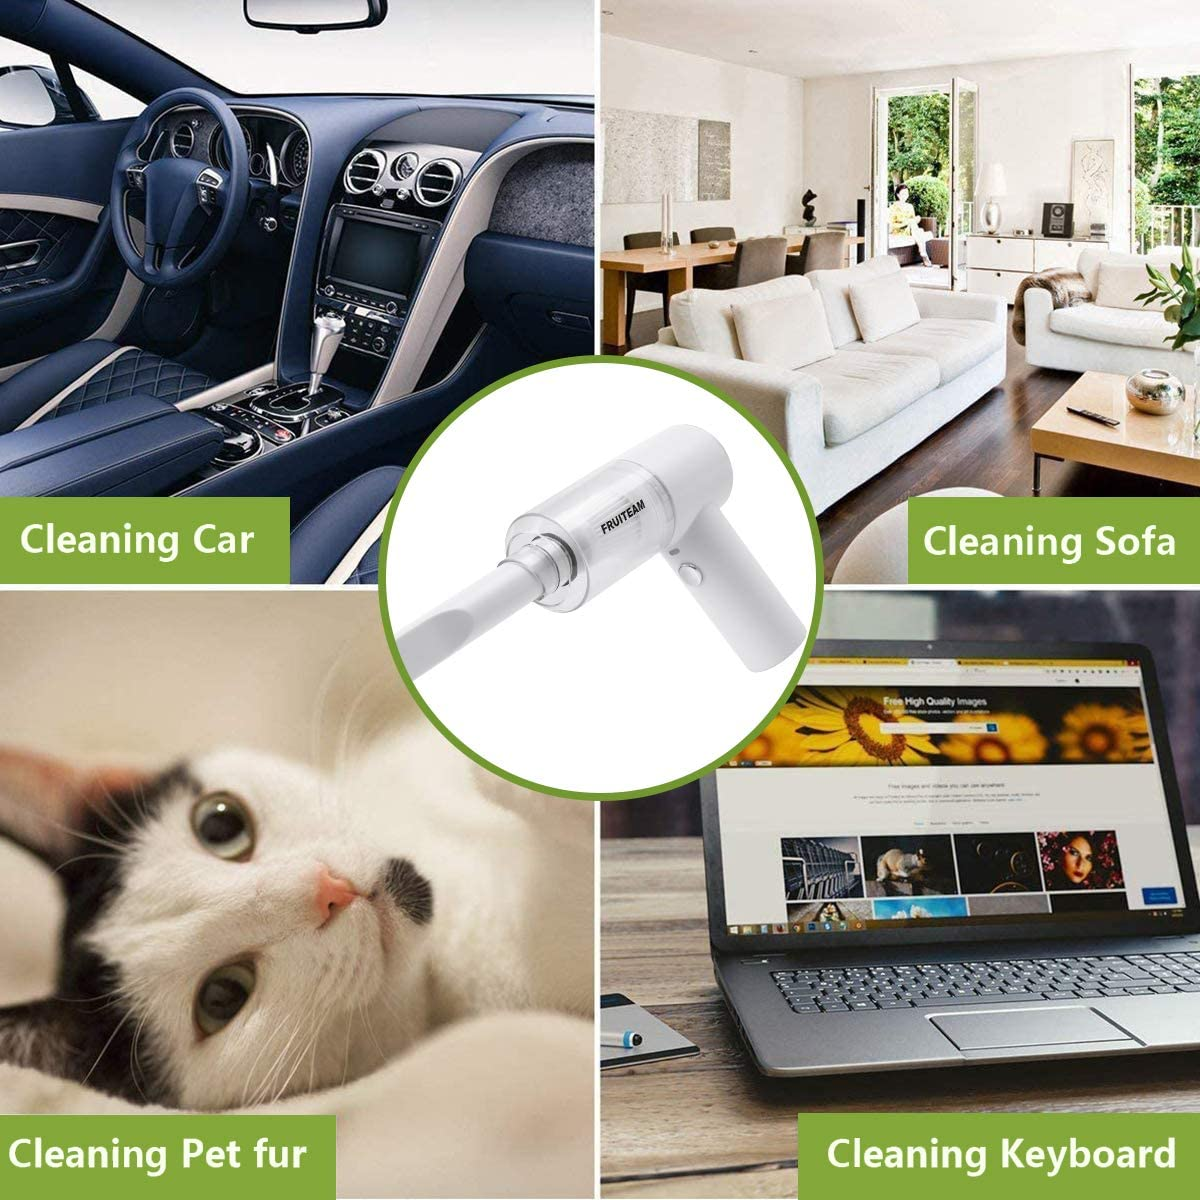 FRUITEAM Handheld Vacuum Cleaner Cordless USB Rechargeable Vacuum Cleaner with Strong Suction Power Suitable for Home and car Portable Keyboard Vacuum Cleaner with LED Light